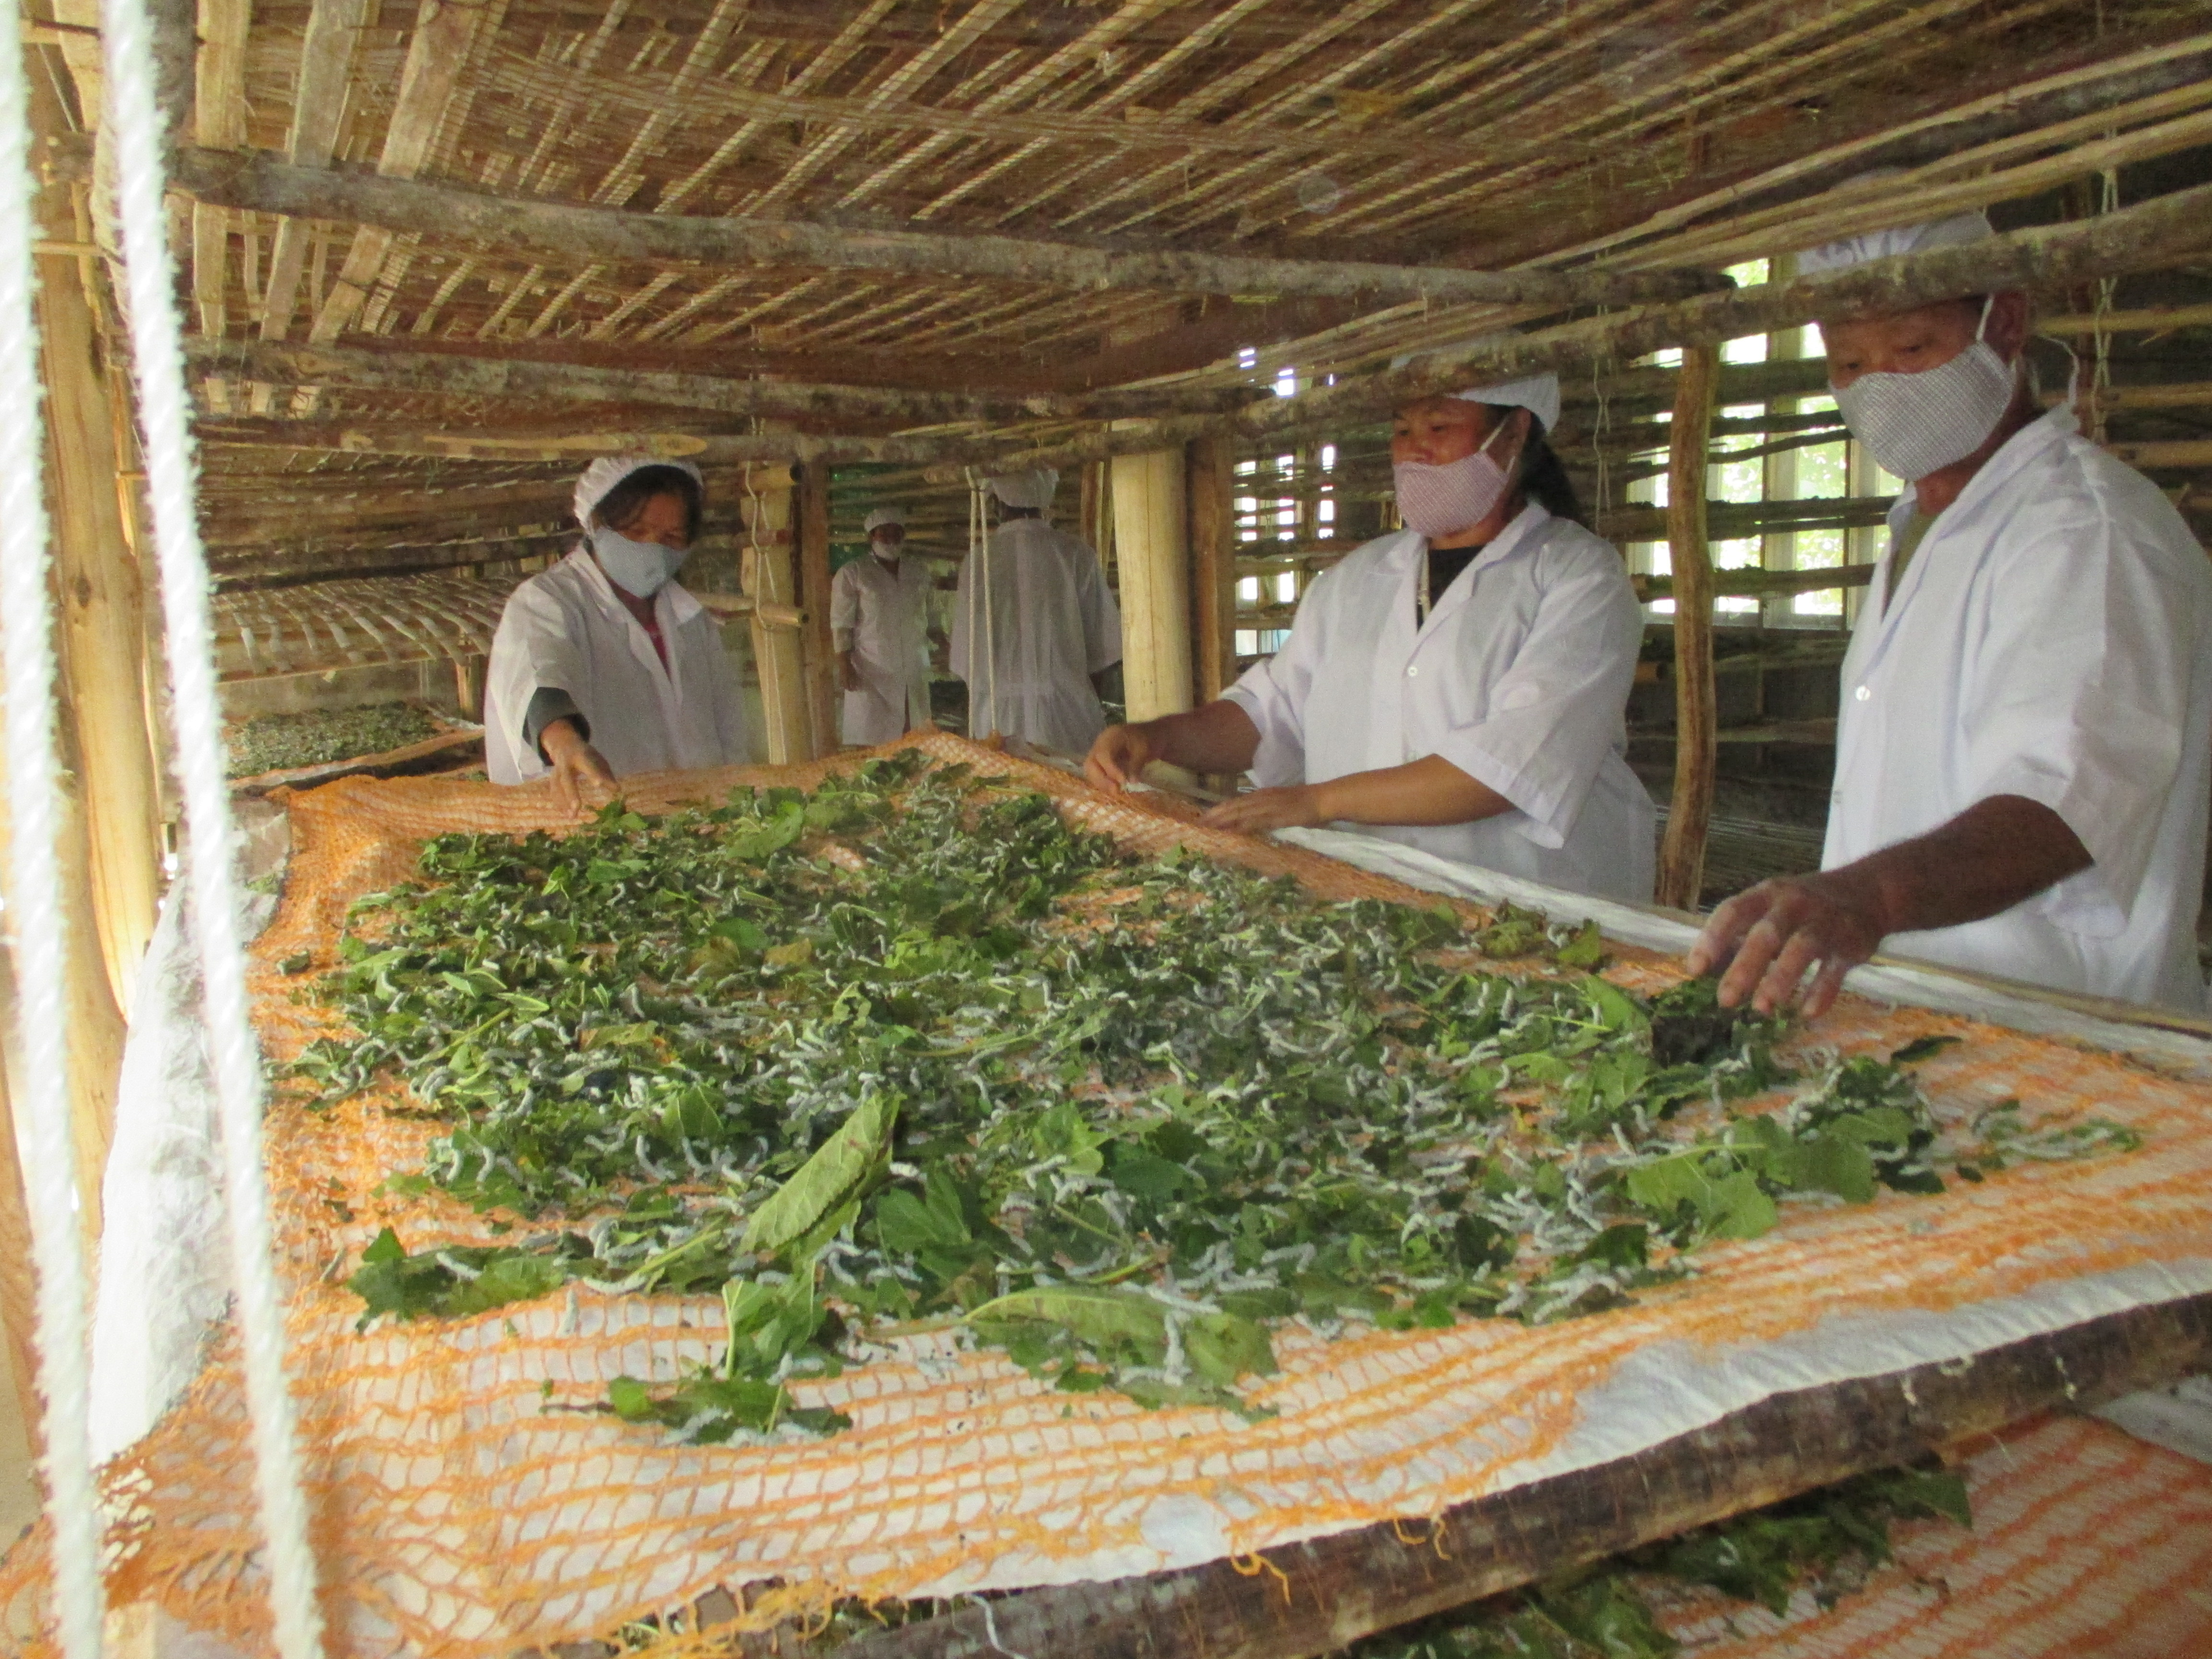 Thousands of silkworms are fed